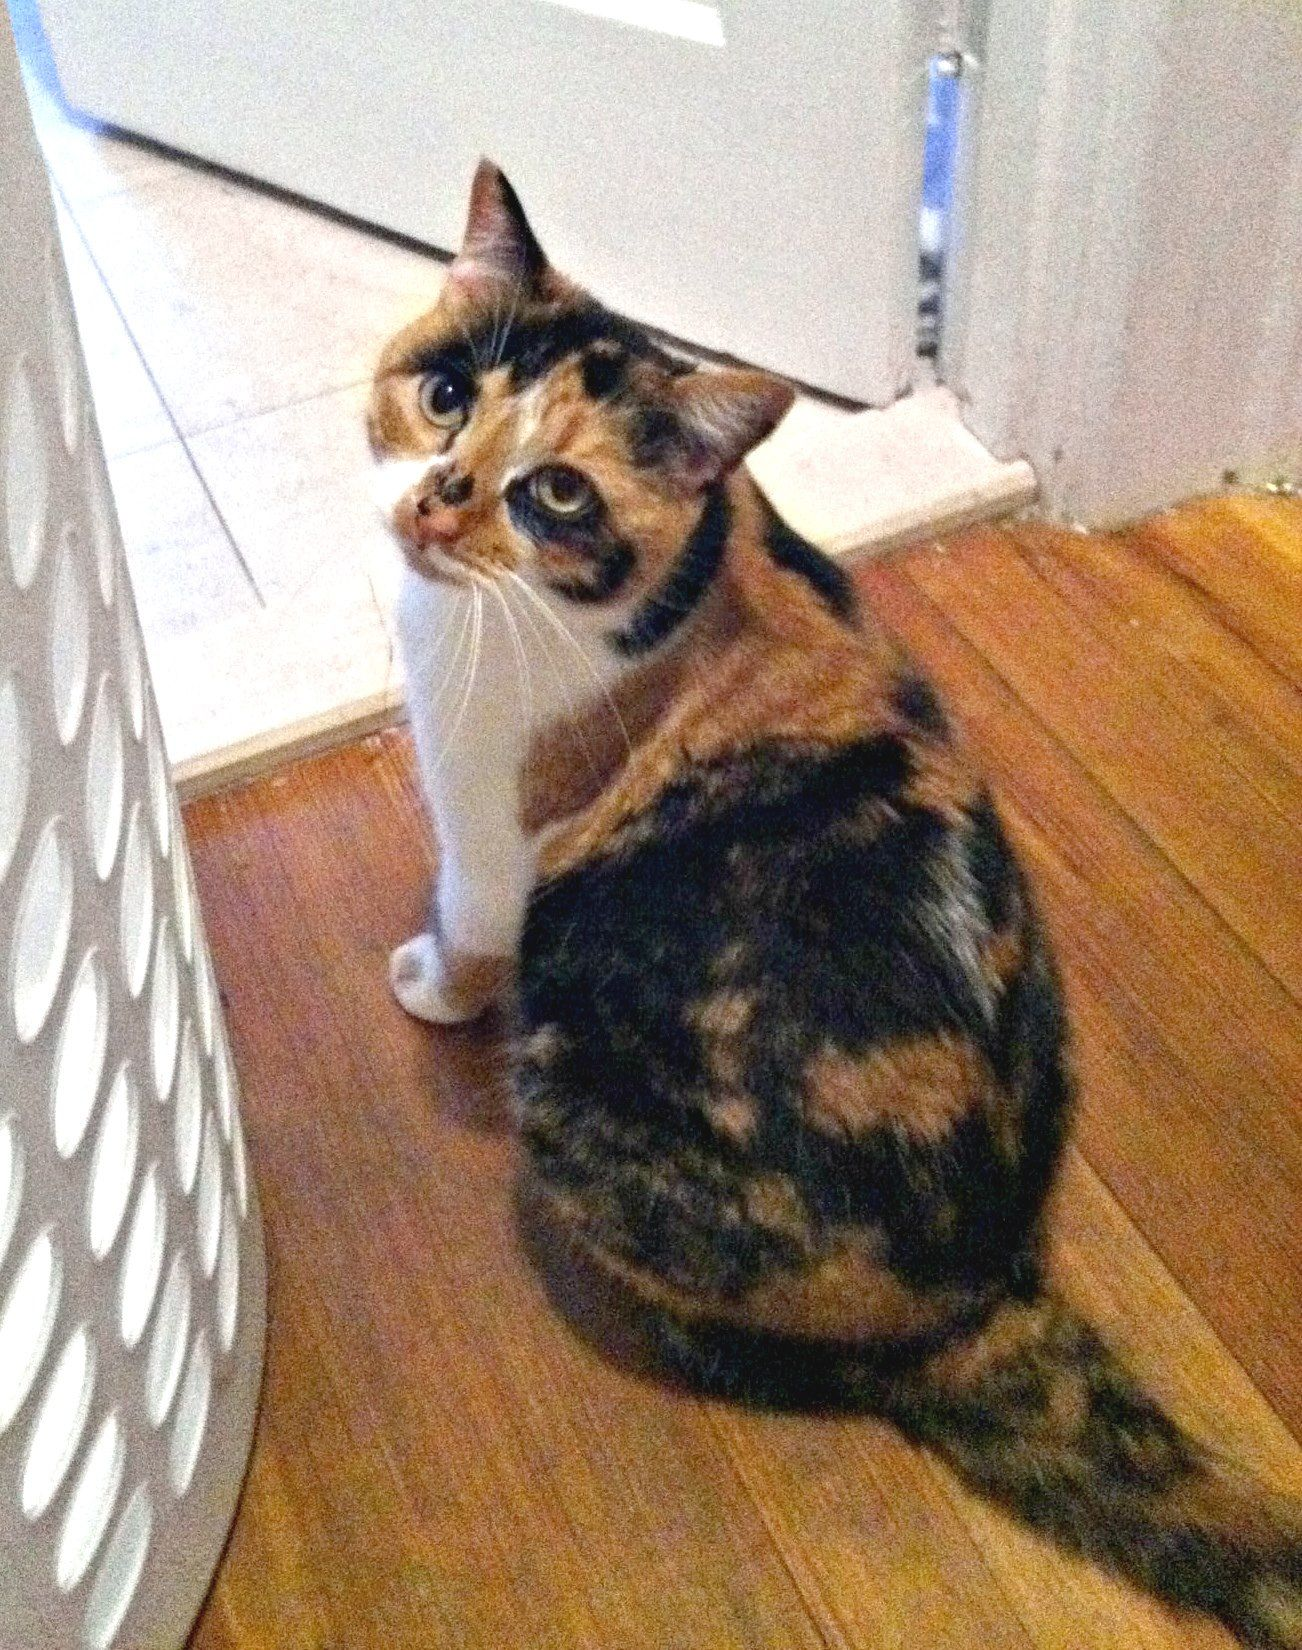 Missing our calico cat Izzy. If you have seen her in West